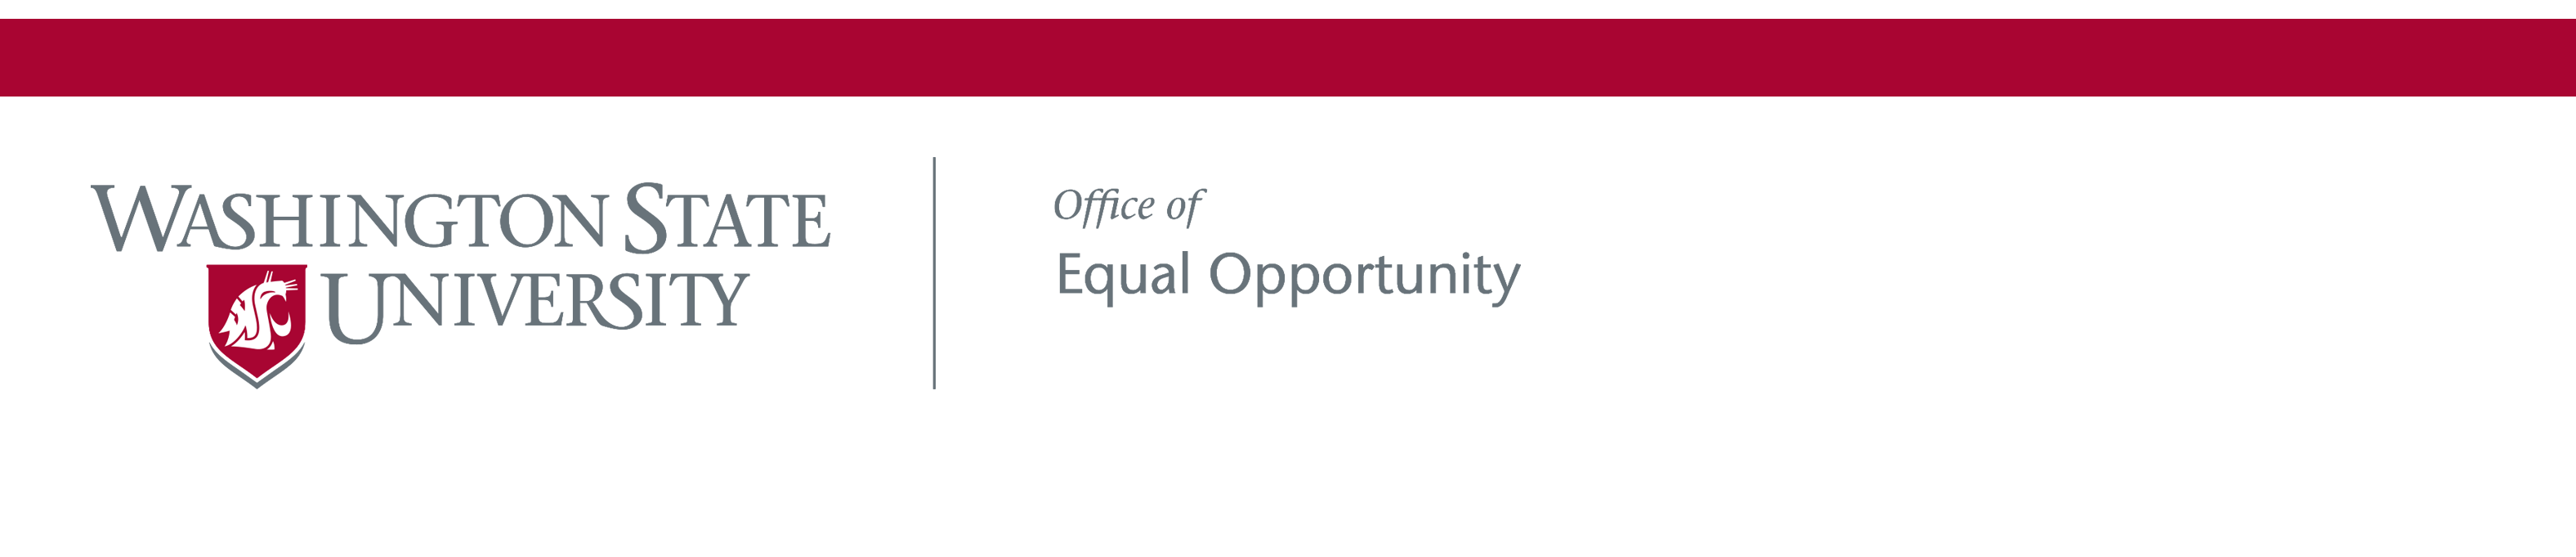 Washington State University | Office for Equal Opportunity